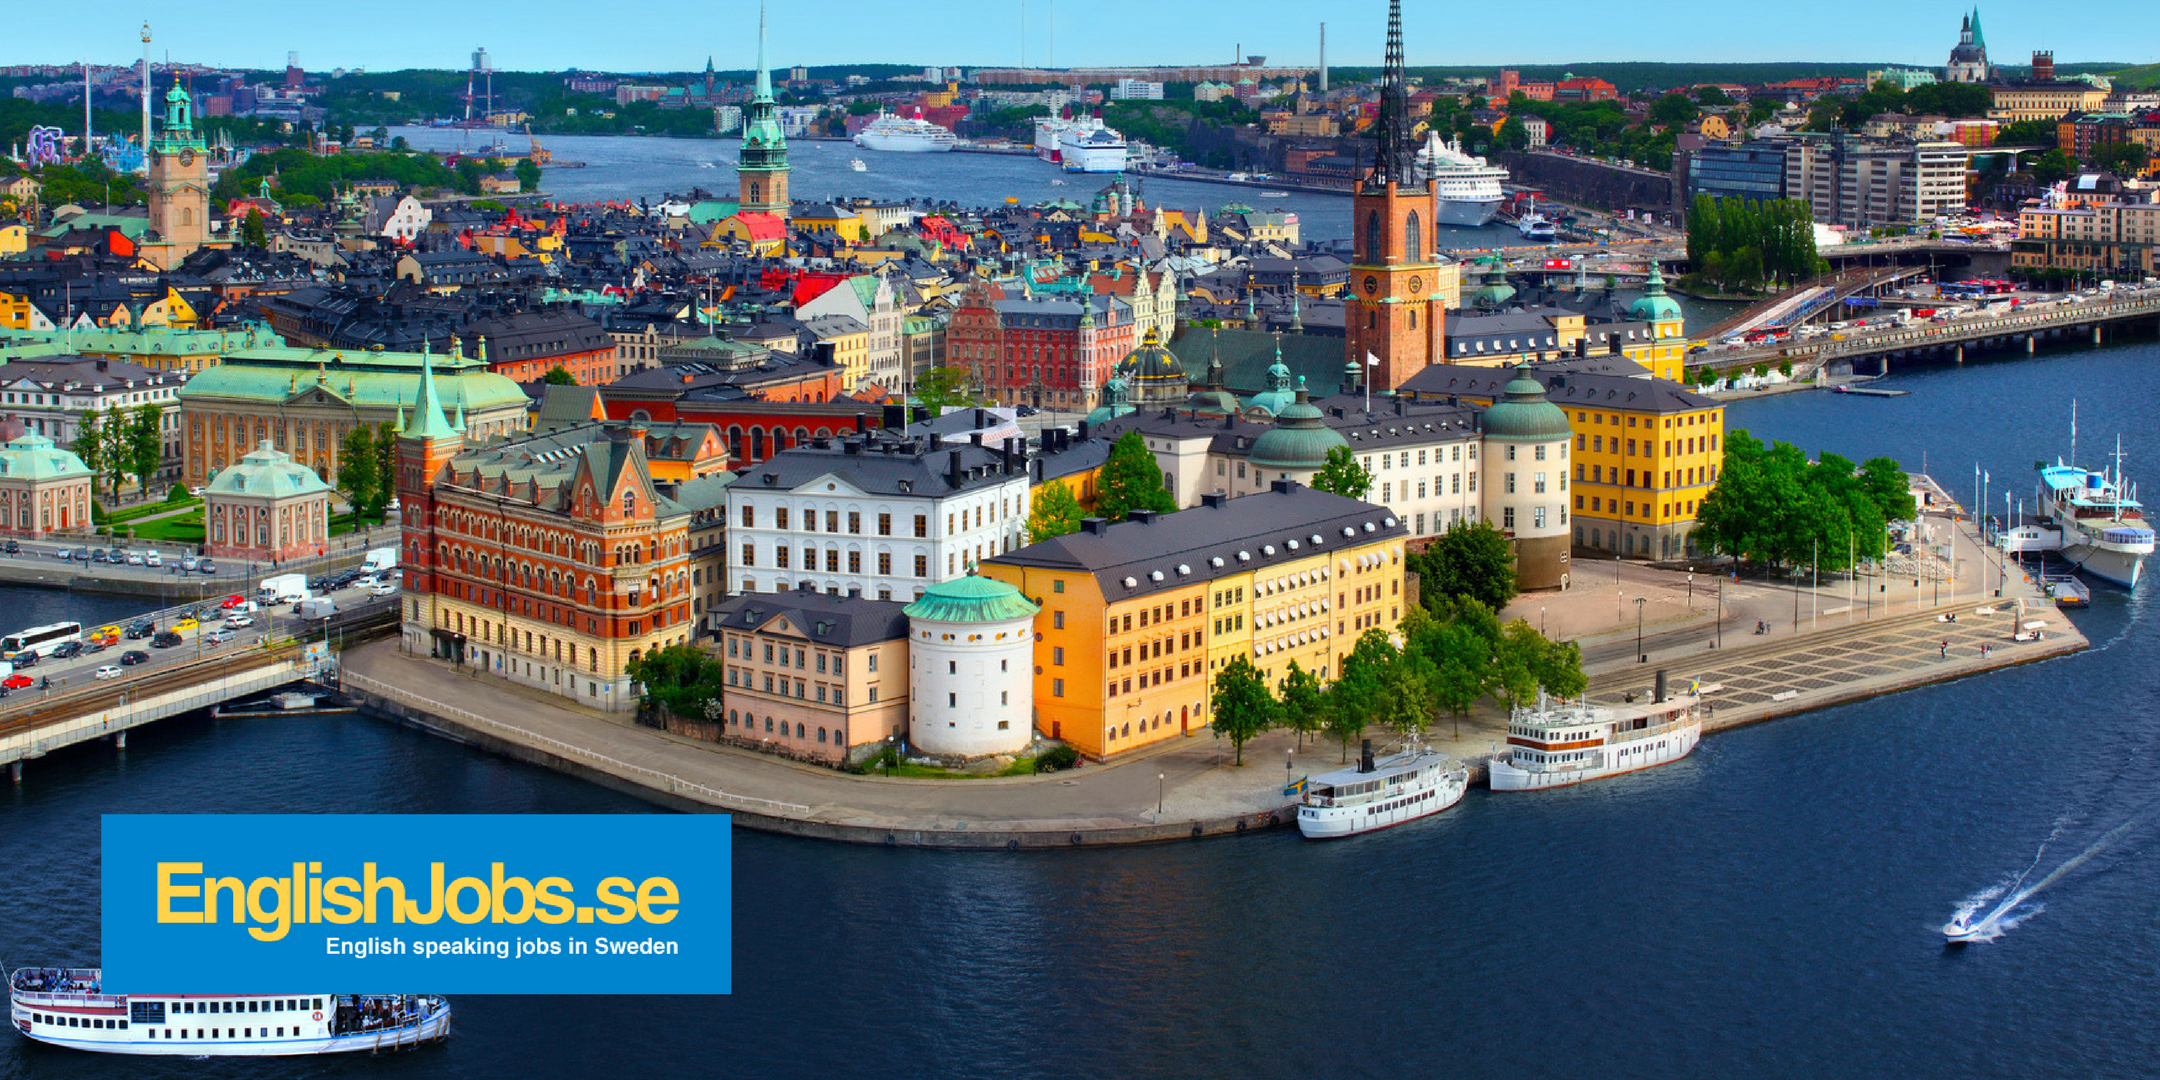 Work in Europe (Sweden, Denmark, Germany) - Your job search from Oklahoma to Stockholm